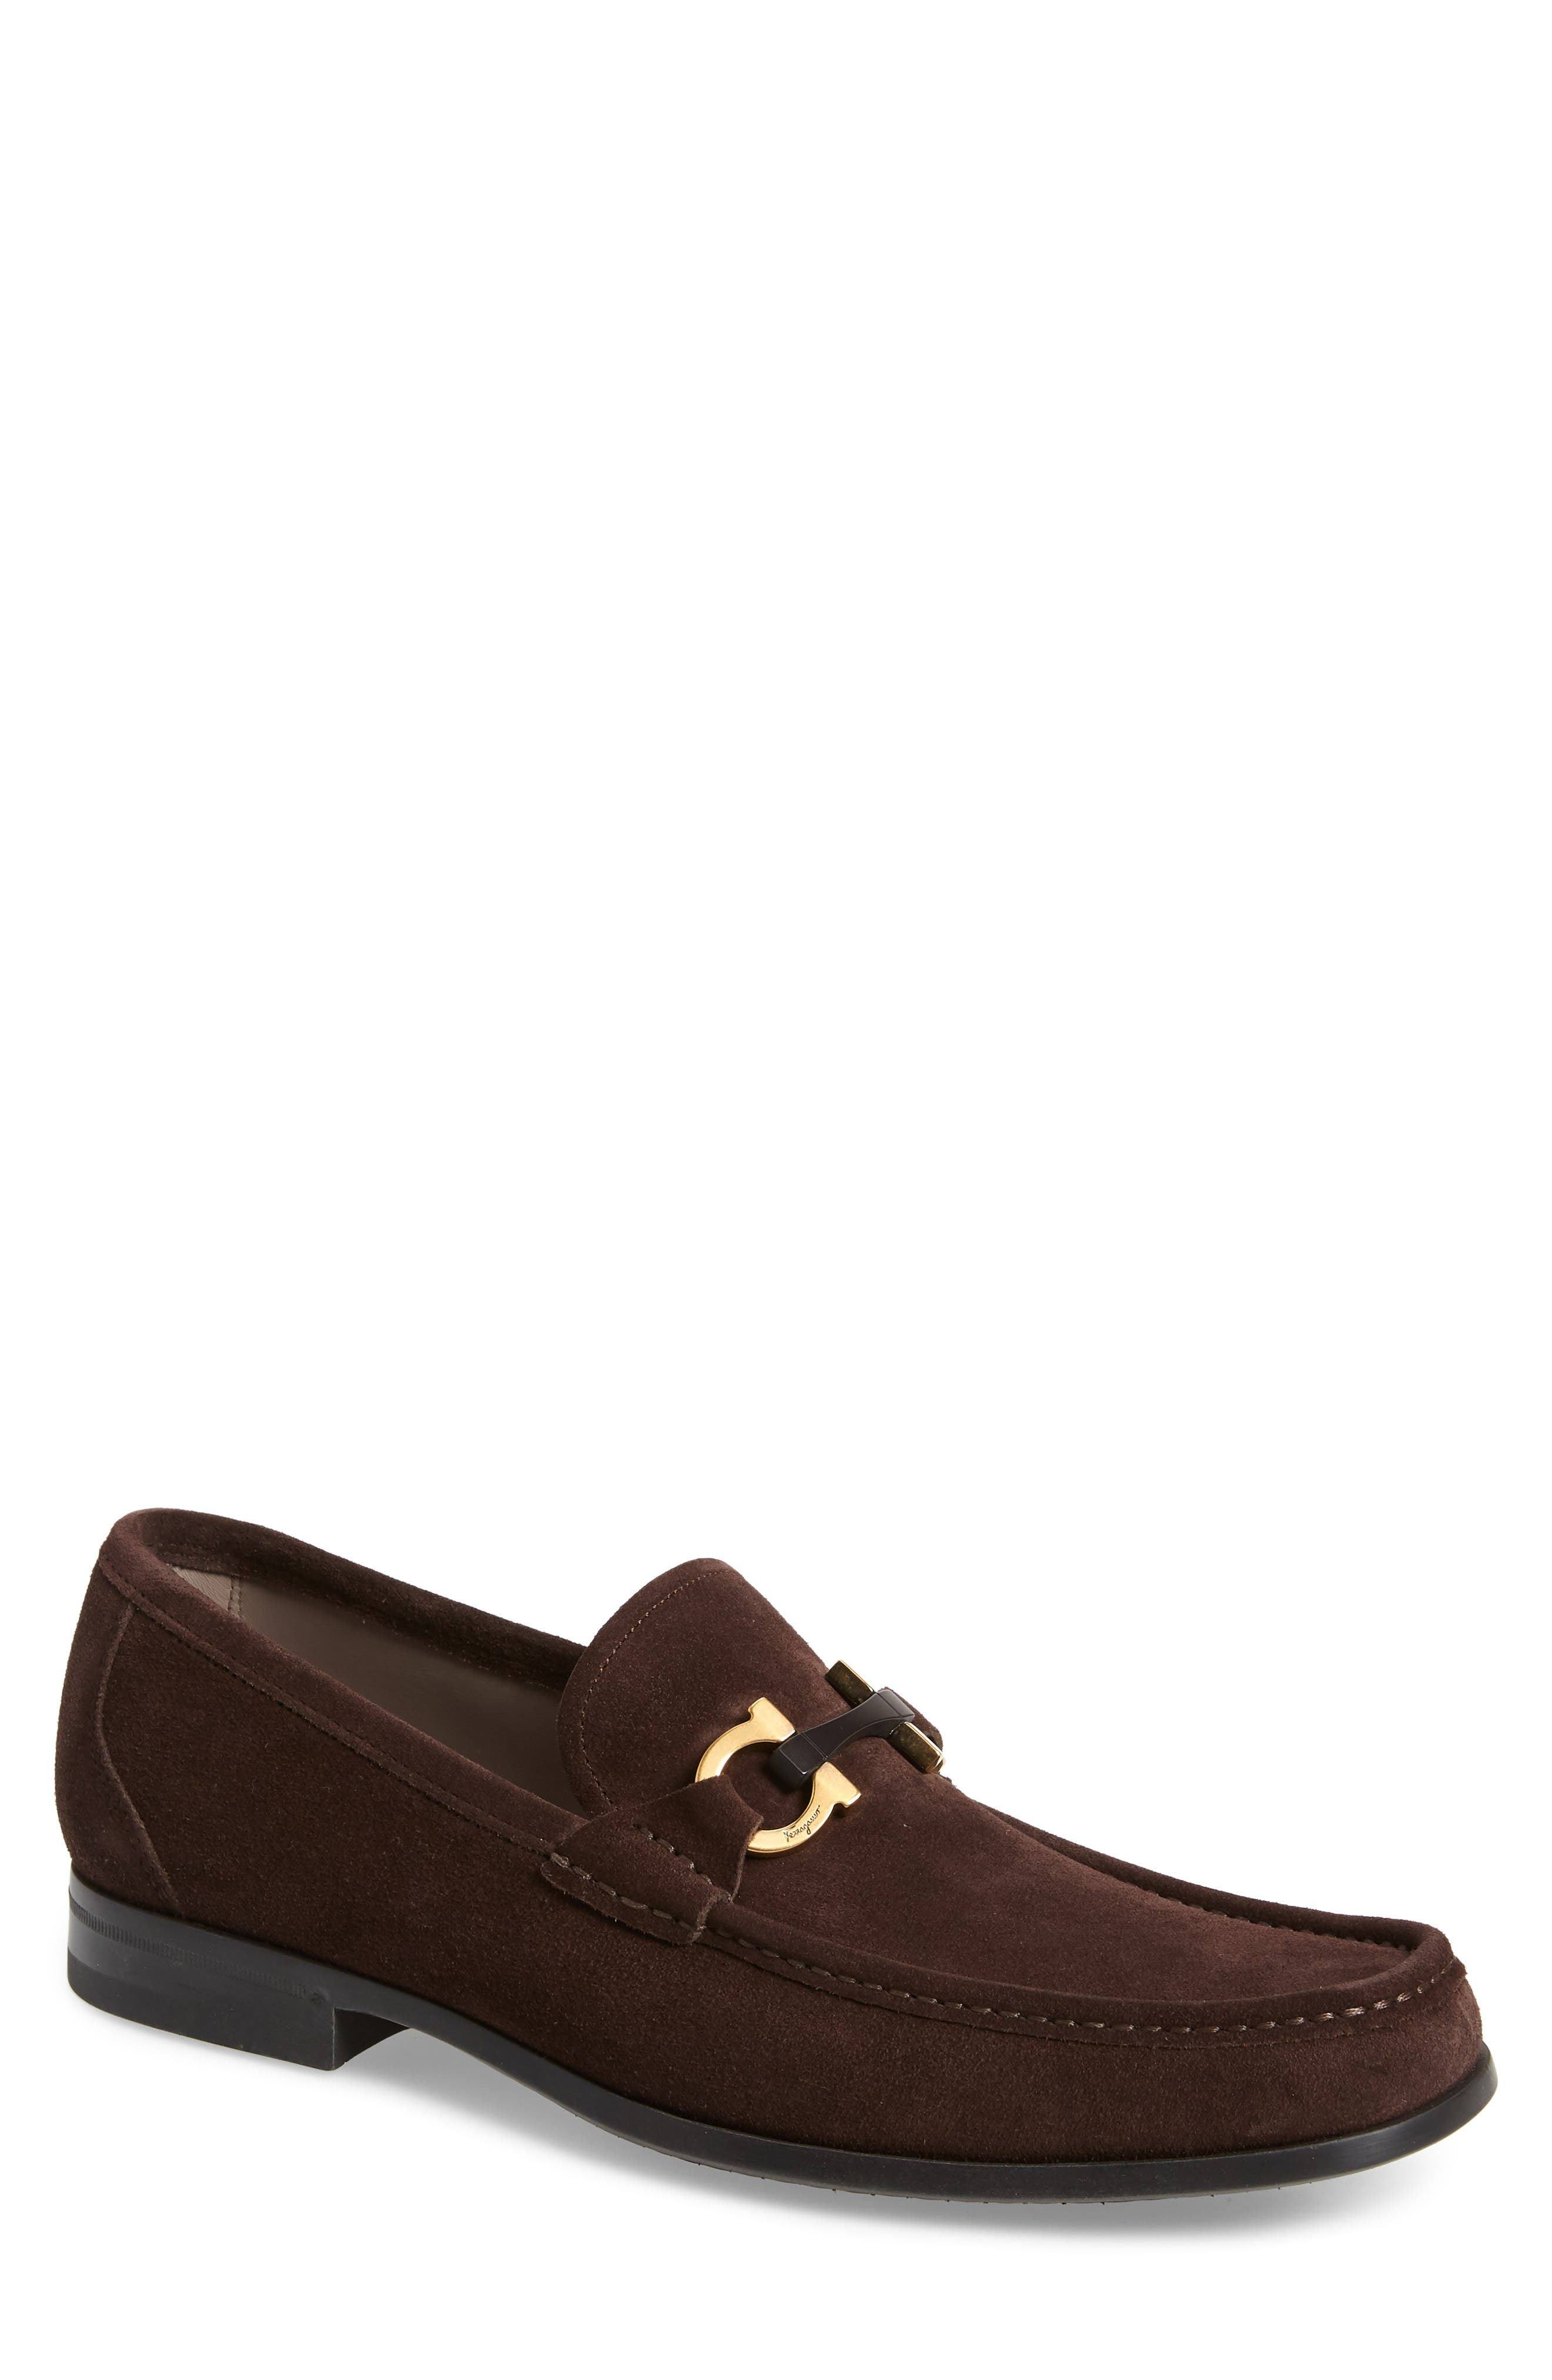 Grandioso Bit Loafer, Main, color, BROWN SUEDE